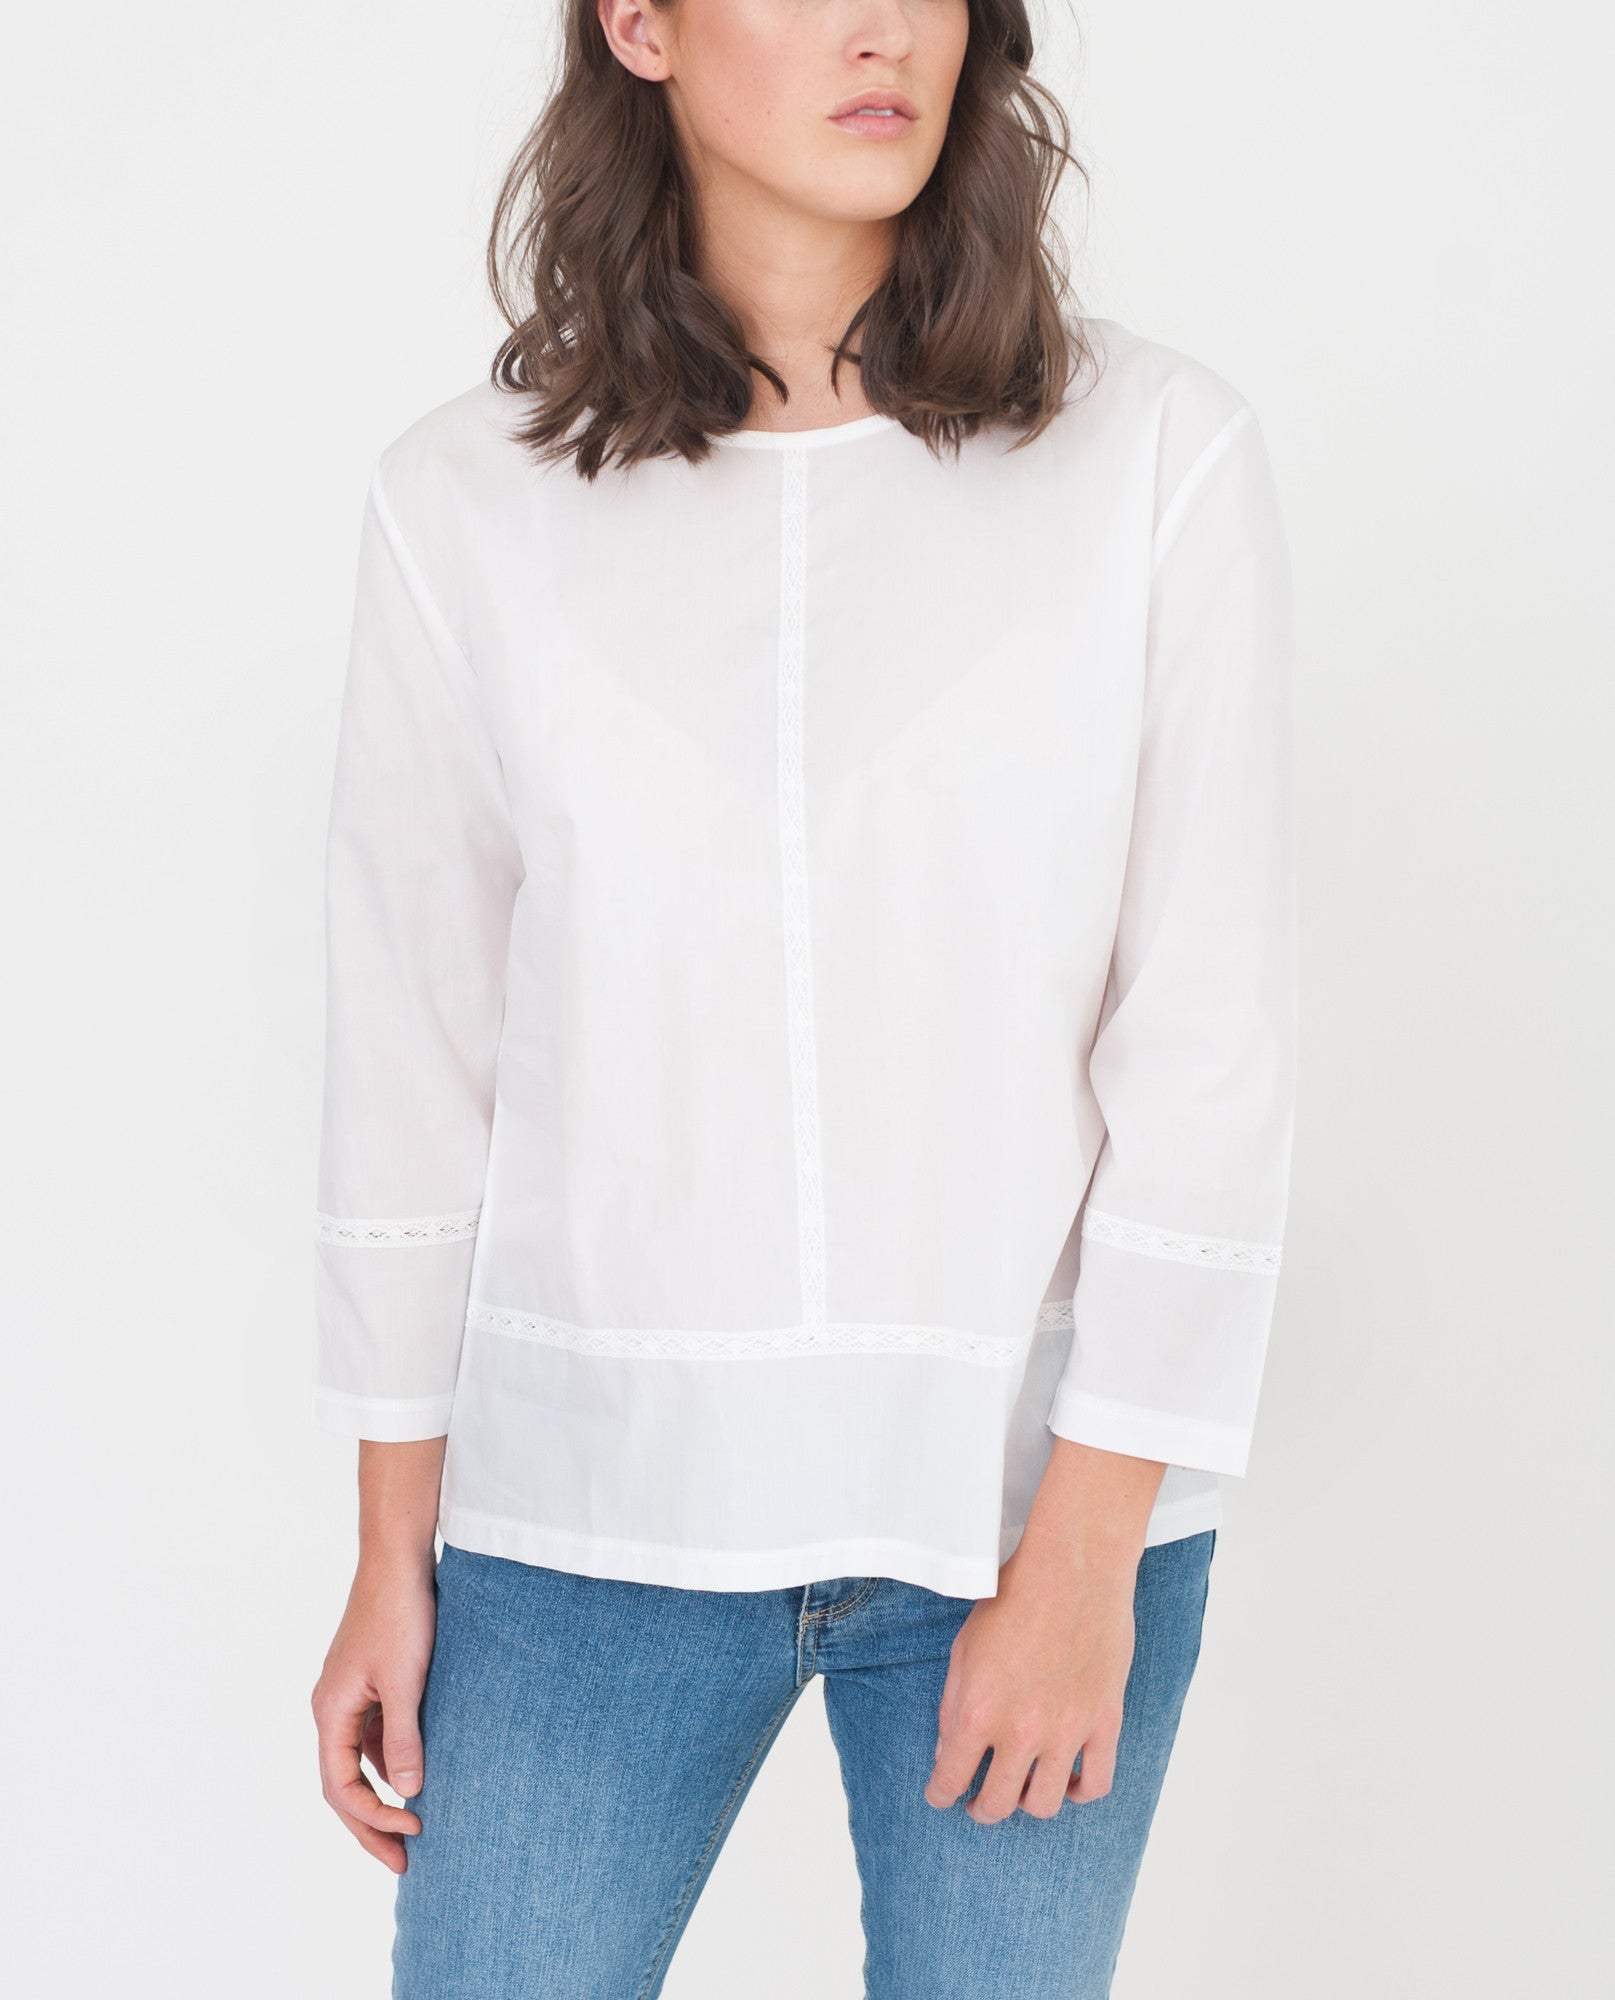 TAYLOR Organic Cotton Blouse from Beaumont Organic